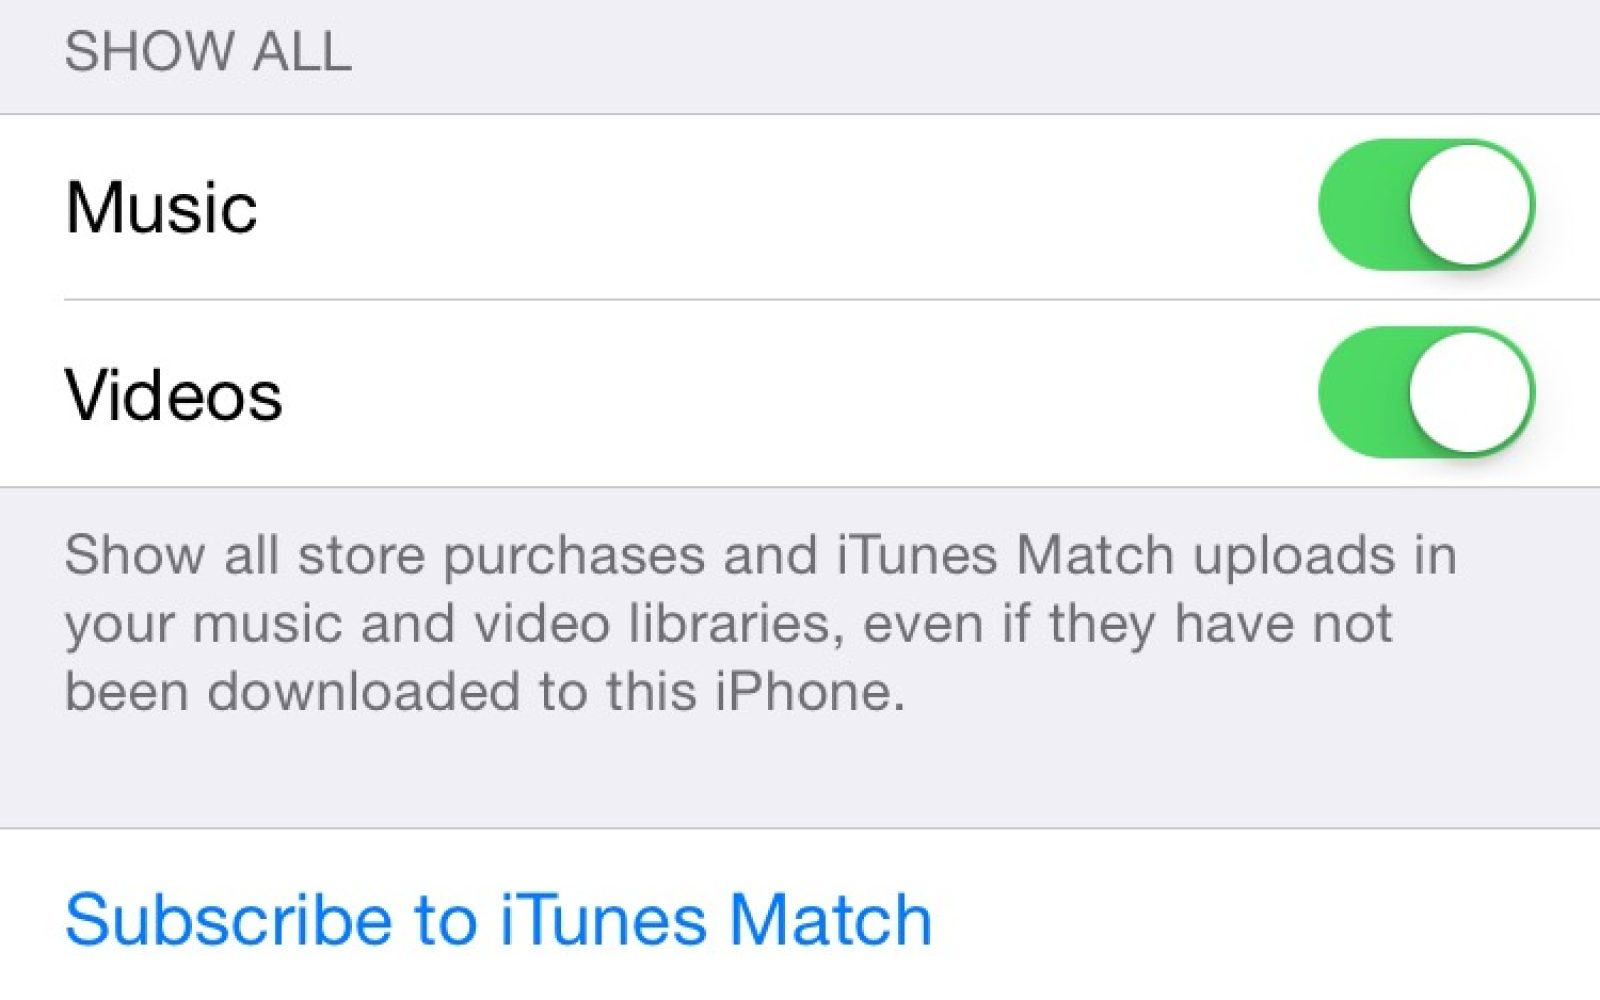 iOS 8 3 includes settings to download free apps and iTunes